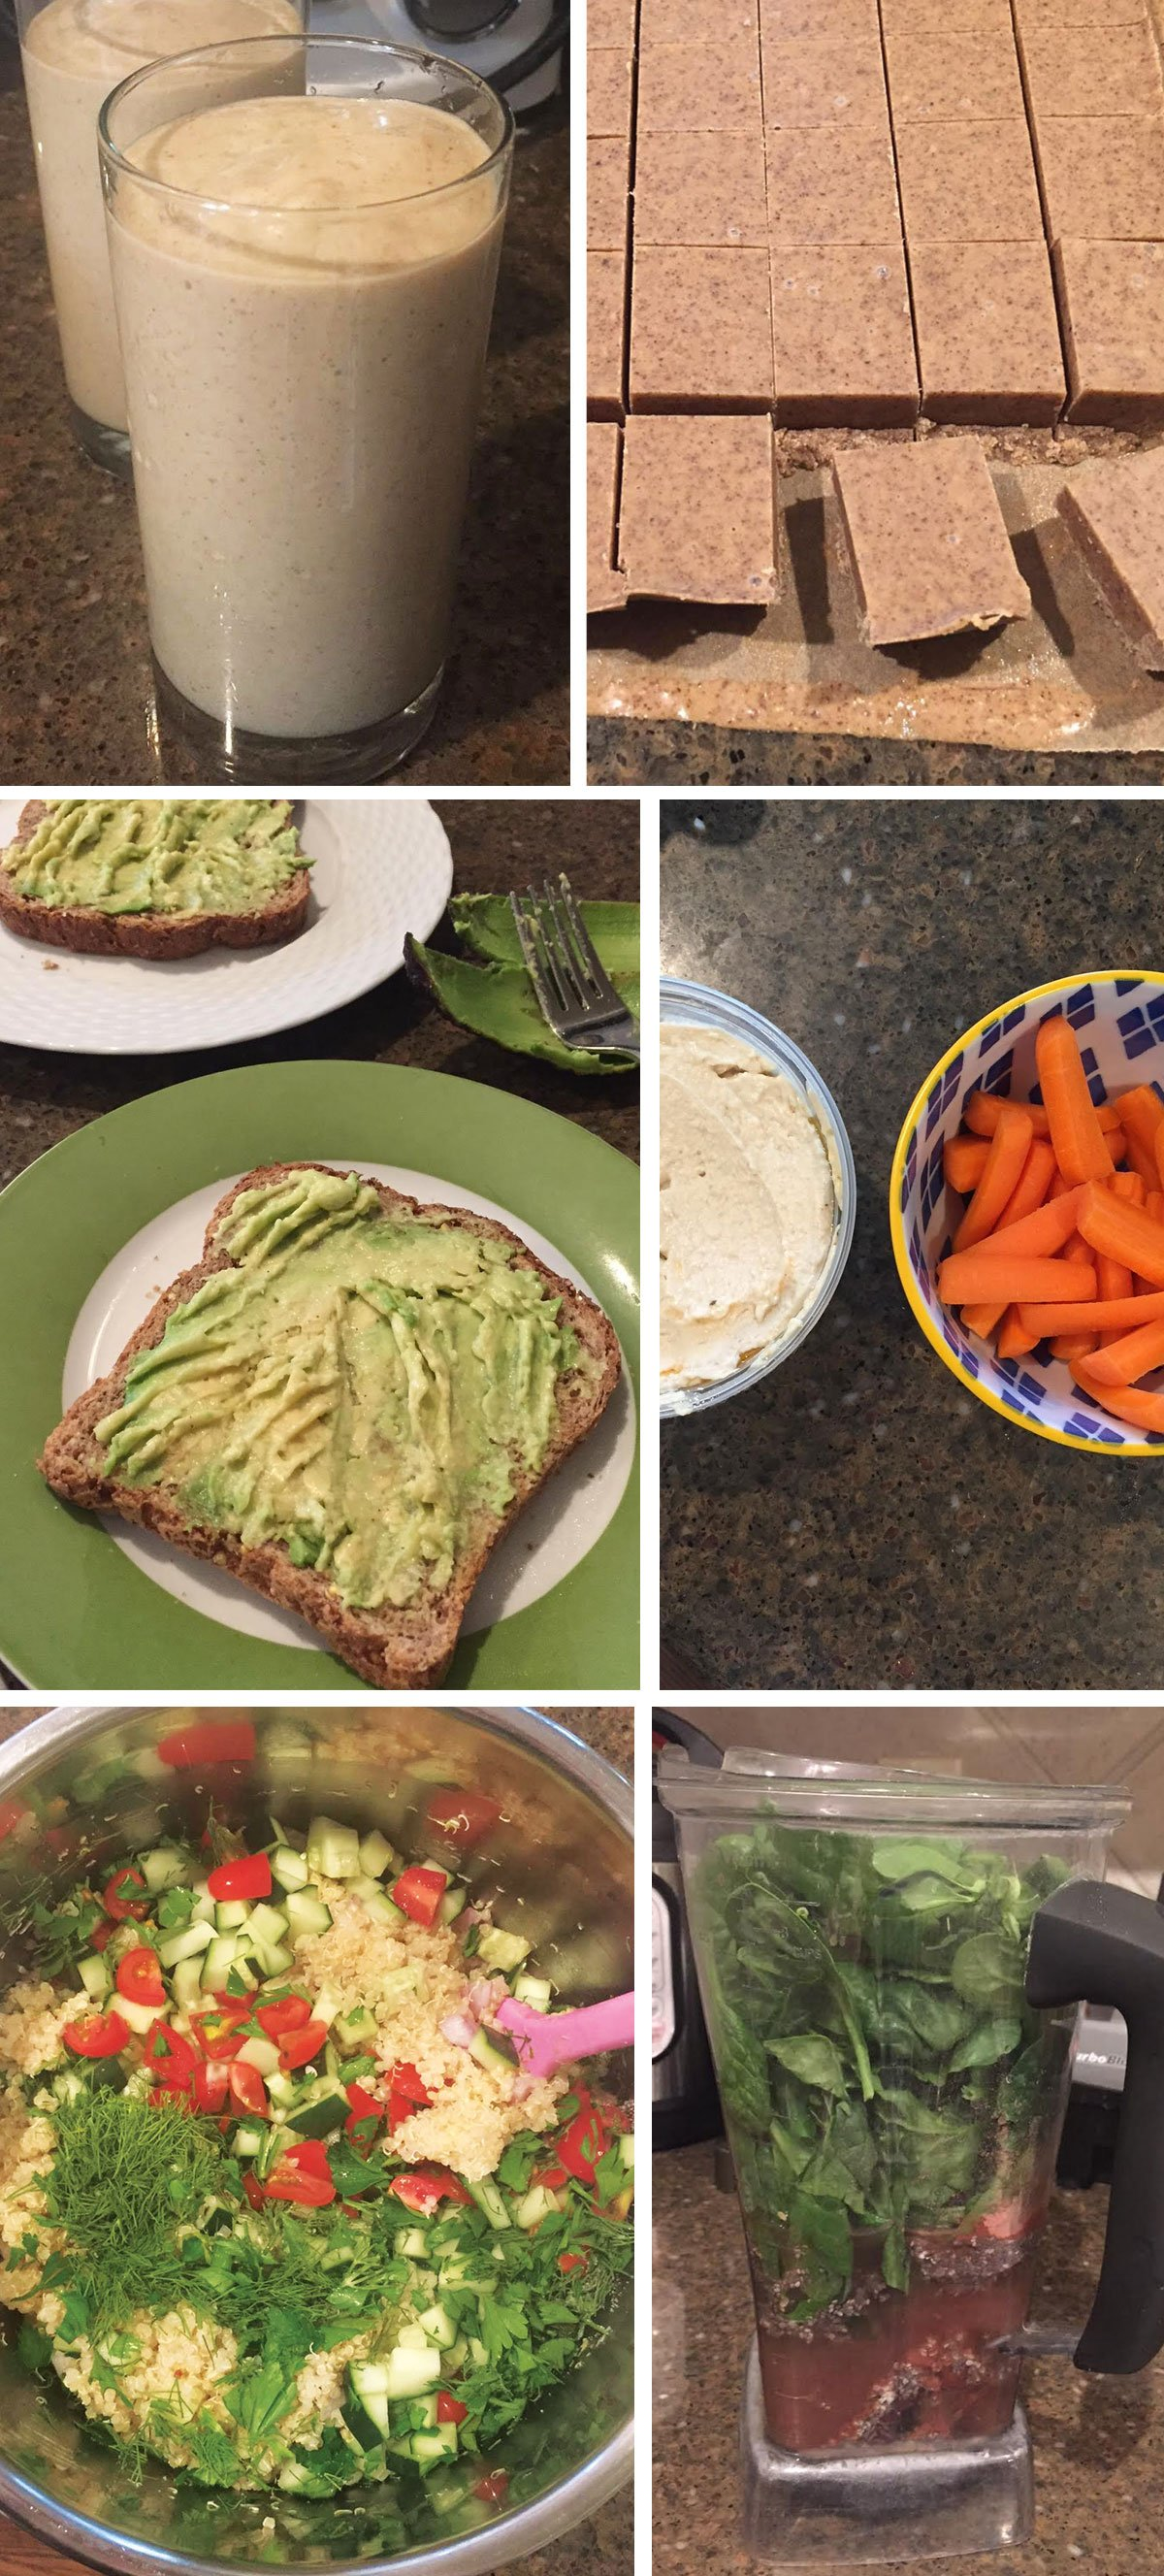 apple pie a la mode smoothie in a glass, almond butter fudge, avocado on toast, carrots and hummus, and quinoa pasta salad